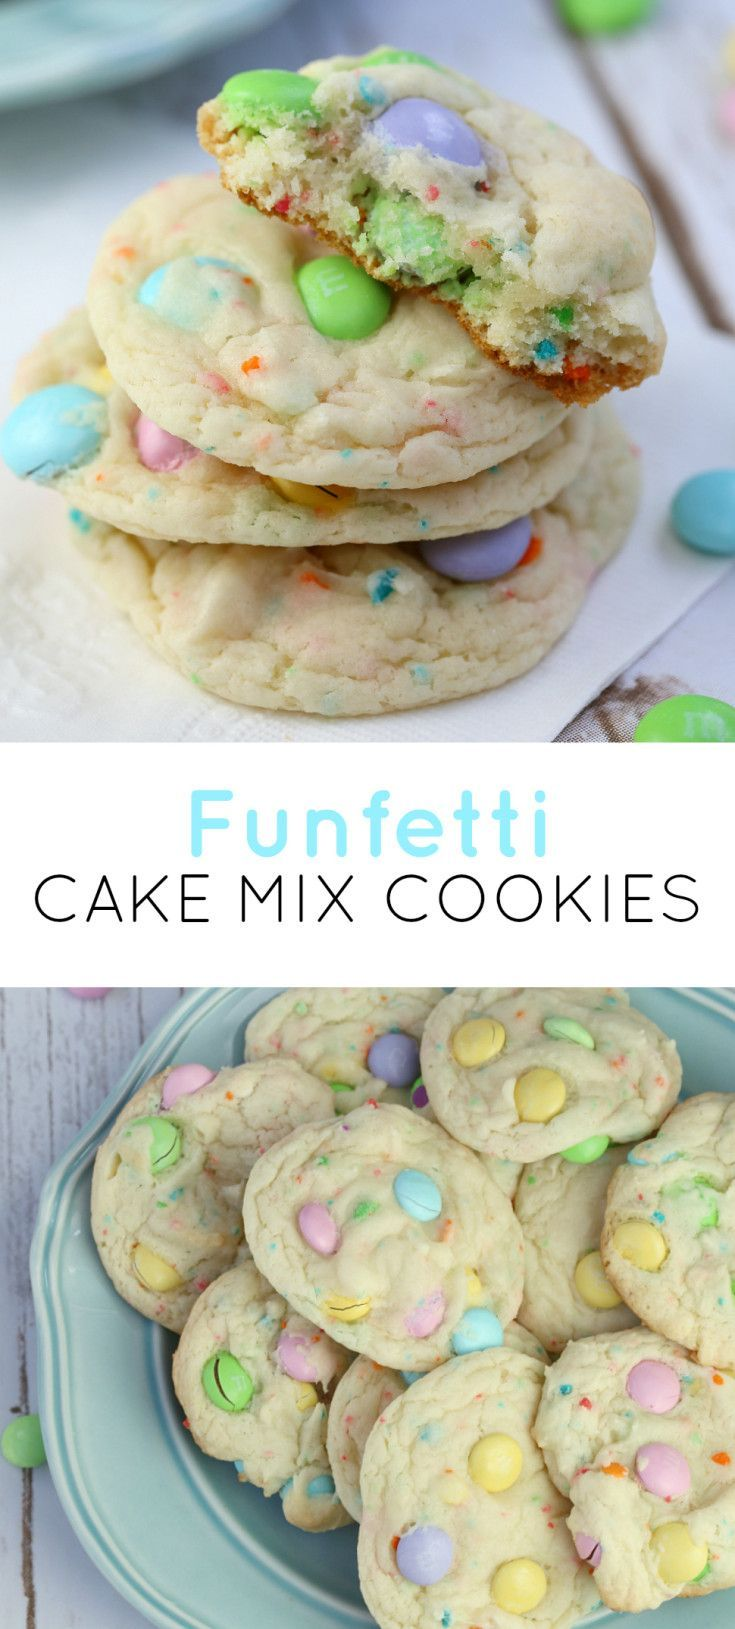 Funfetti Cake Mix Cookies is one of my favourites, I just love the spring 'Eastery' look and the moist cake-like taste. This is one amazing cookie, guys!